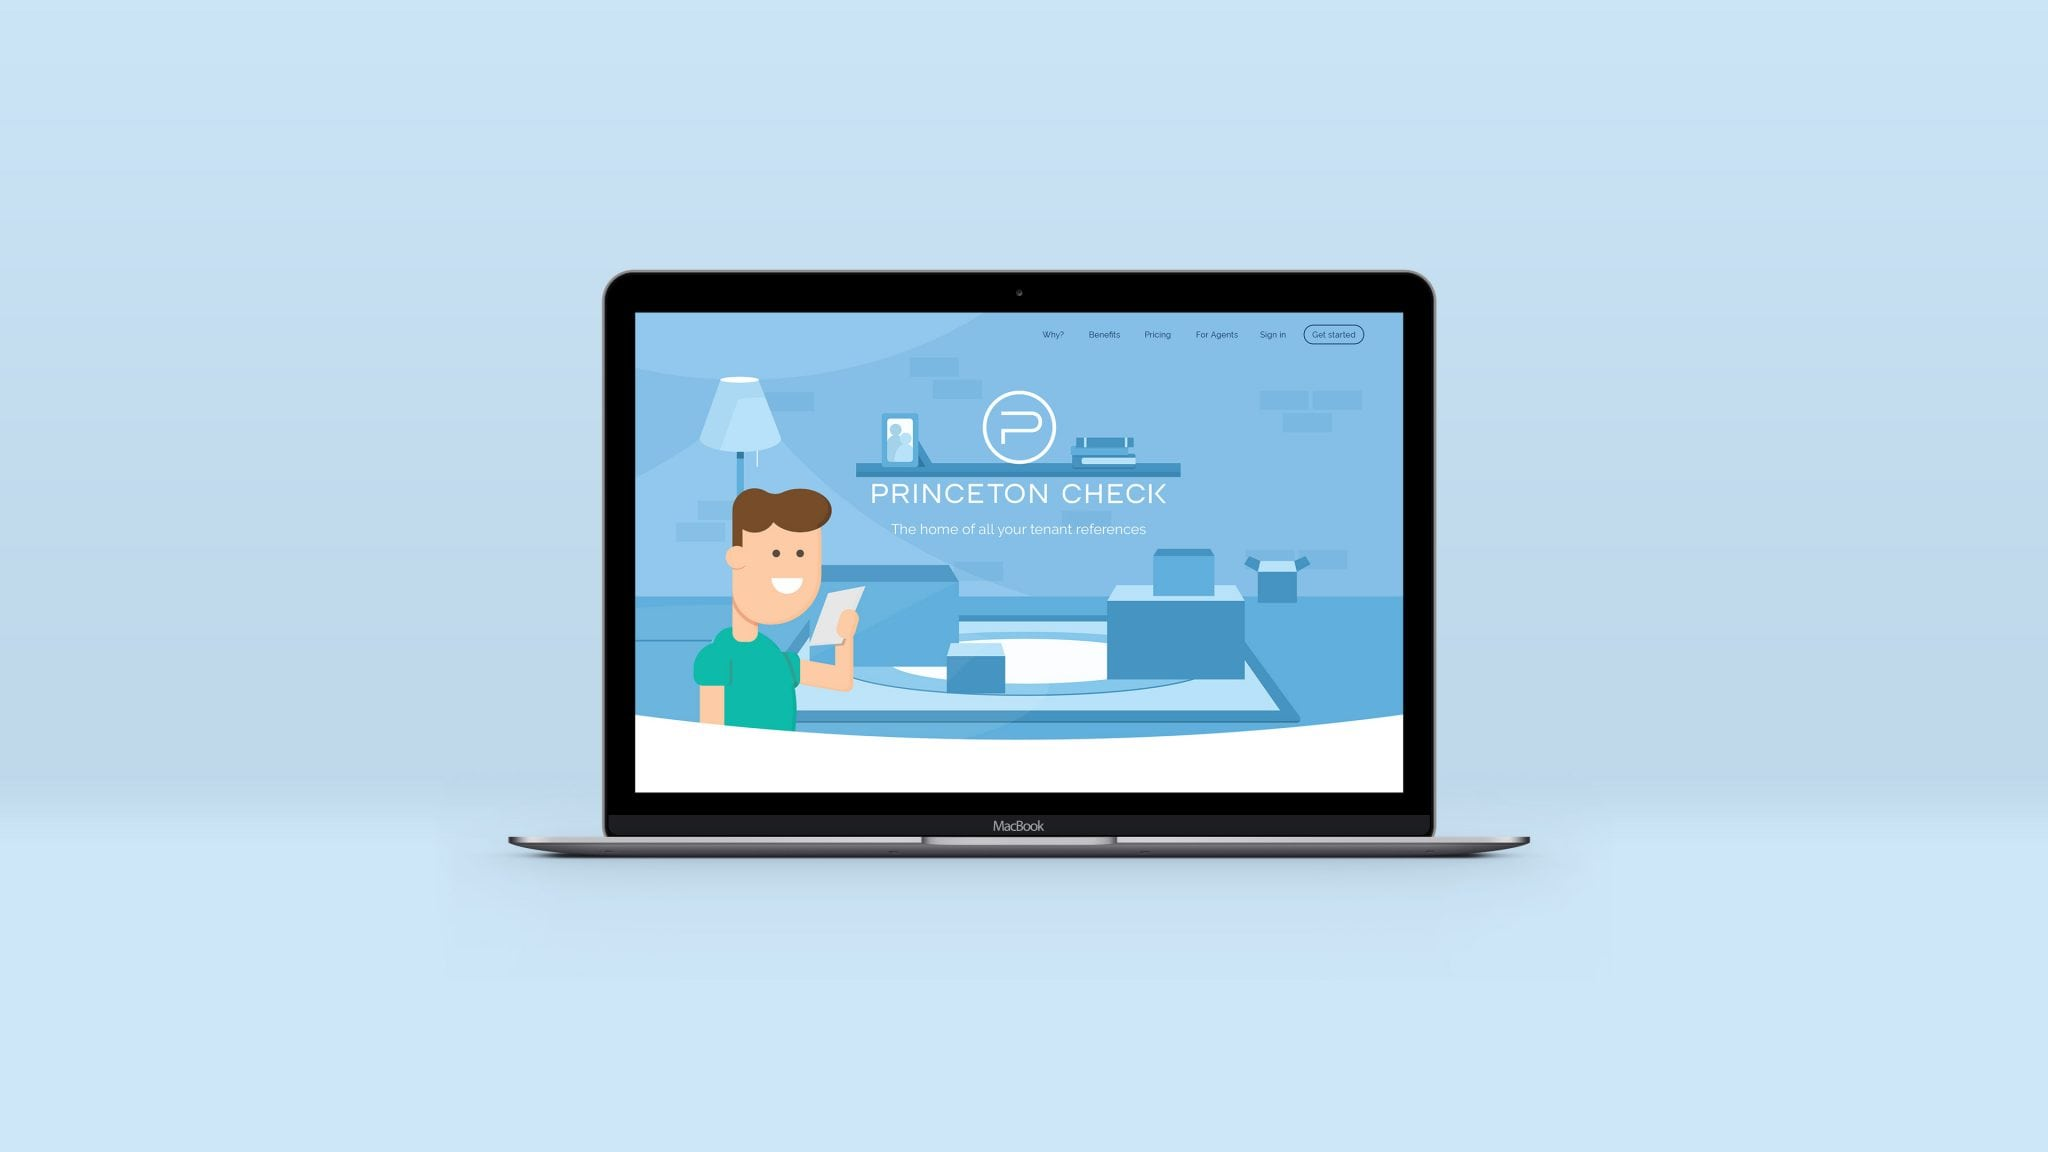 UX Design - Good user experience design ensures that the desires of a user are put at the forefront of design decisions. This is informed by establishing a strong strategic direction at the start of a project, that creative can be measured against as a project progresses.